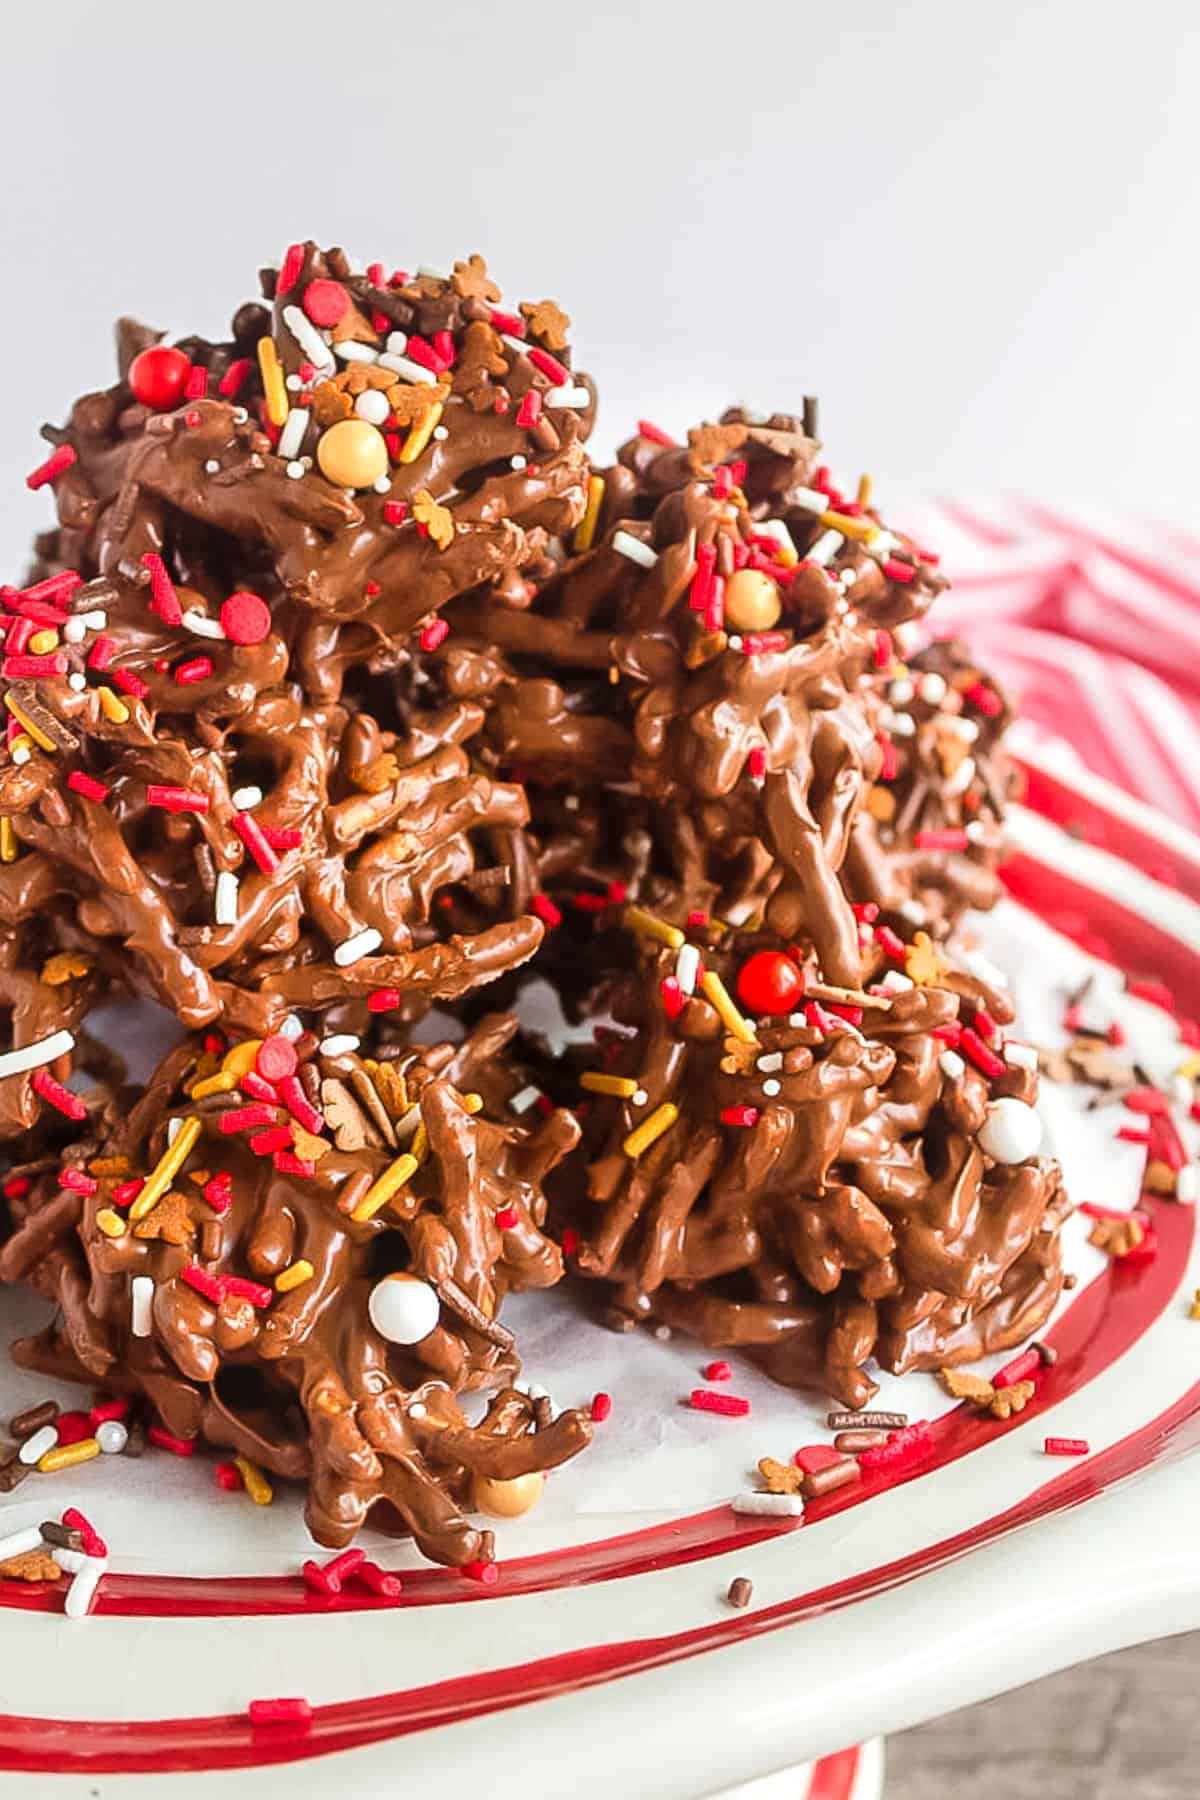 stack of cookies on a red and white platter